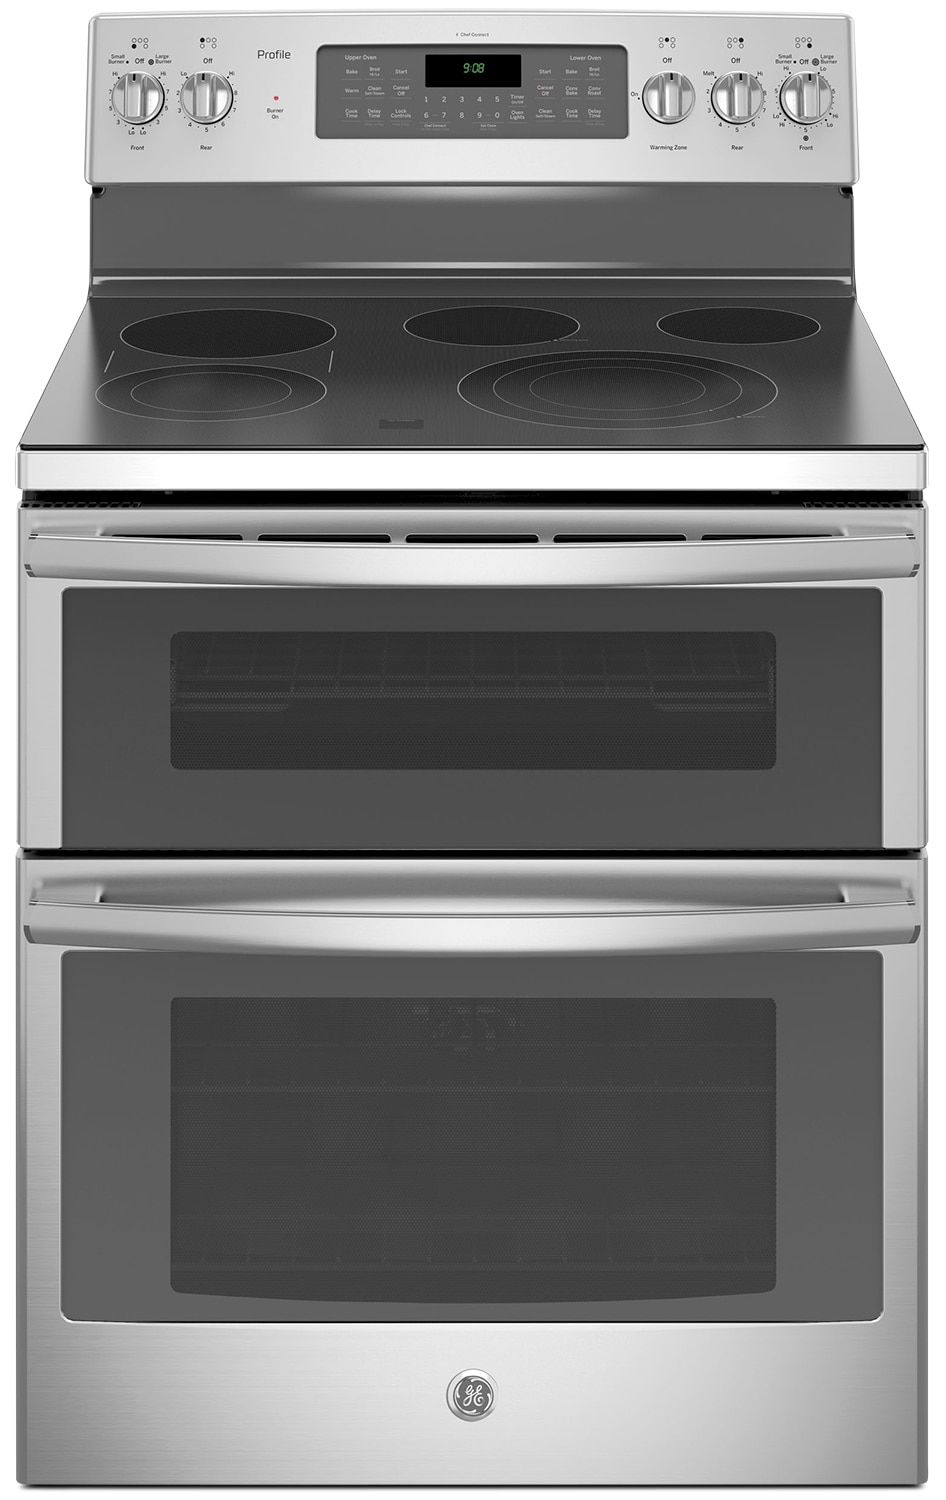 Cooking Products - GE 6.6 Cu. Ft. Freestanding Double Oven Self-Cleaning Convection Range – PCB980SJSS